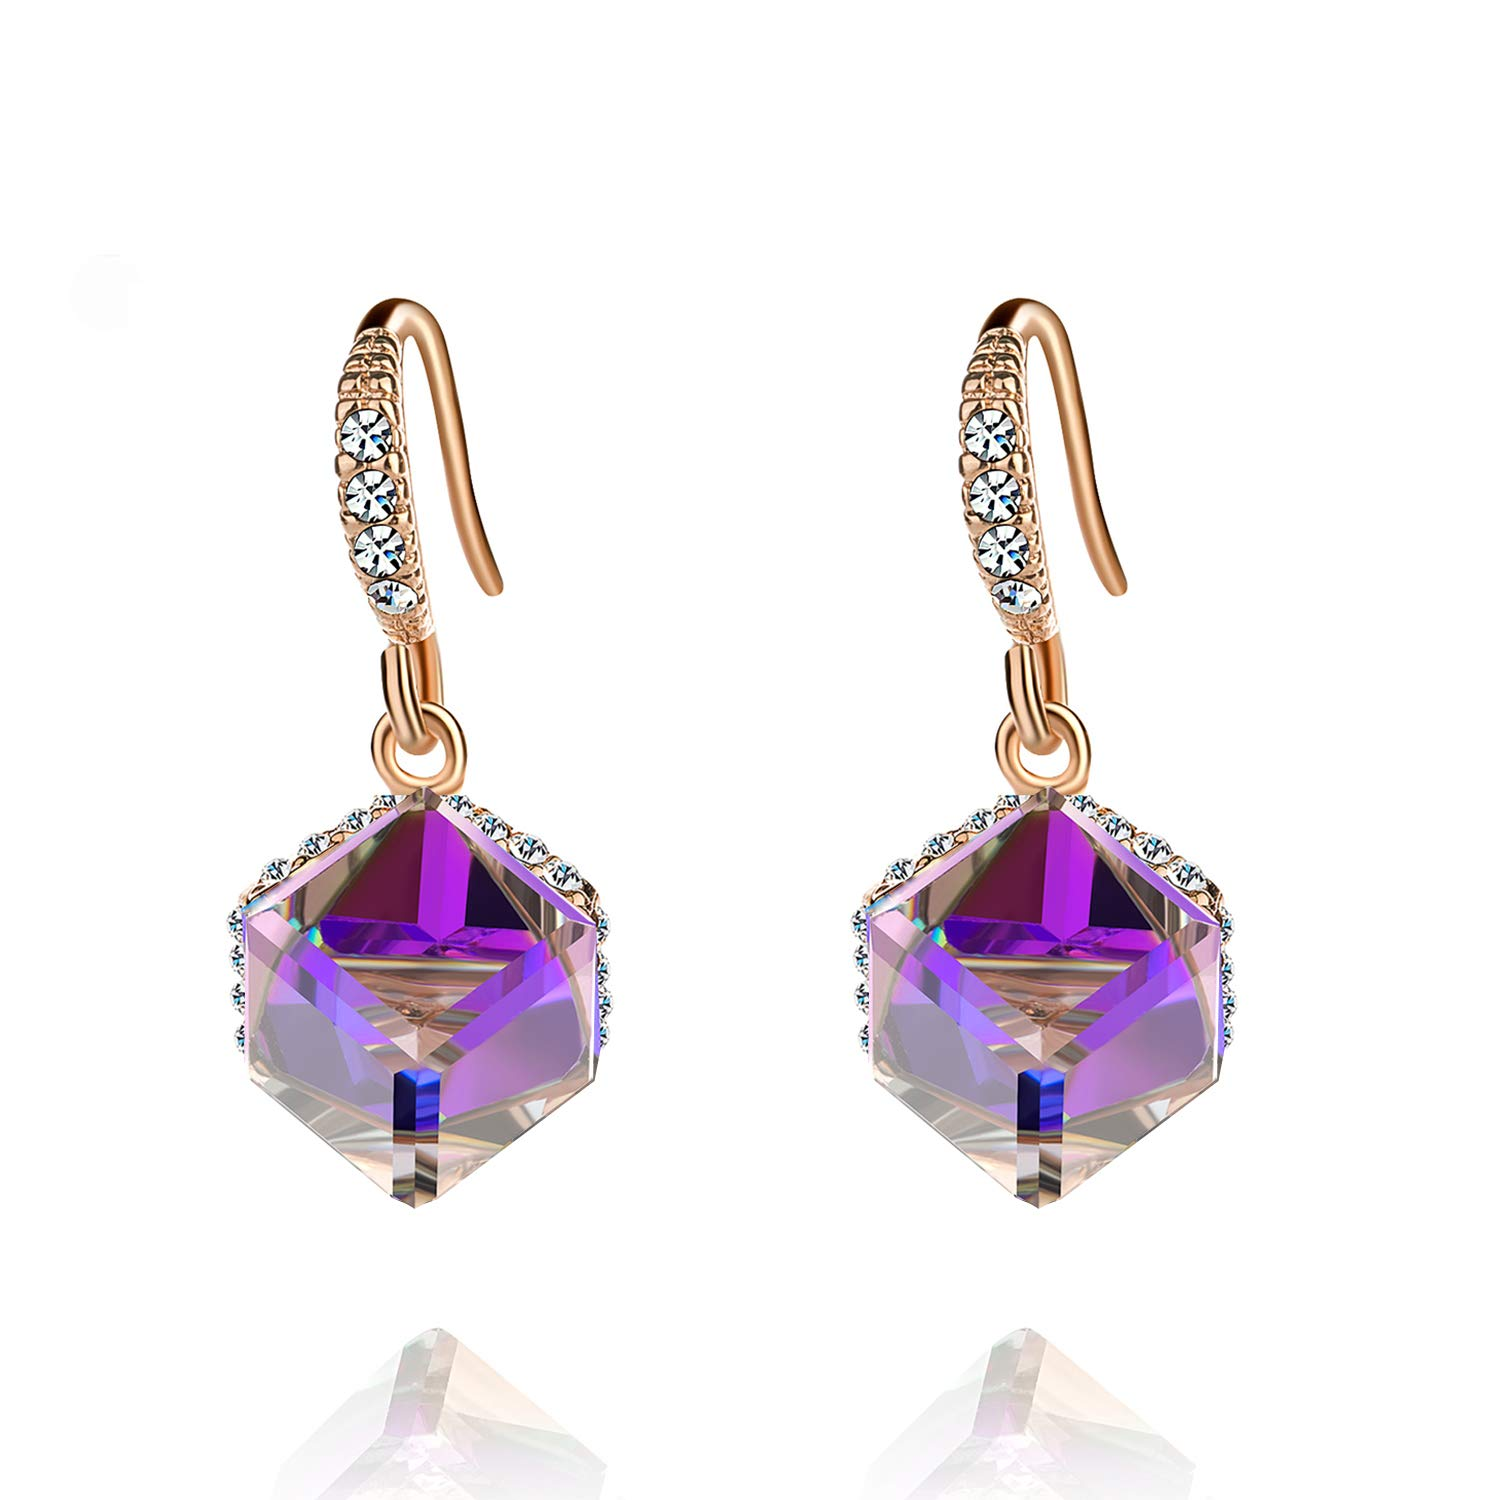 092b1ff72 Amazon.com: Colorful Cube Swarovski Crystal Earrings for Women Girls 14K  Gold Plated Color Changing Drop Earrings (Purple): Jewelry